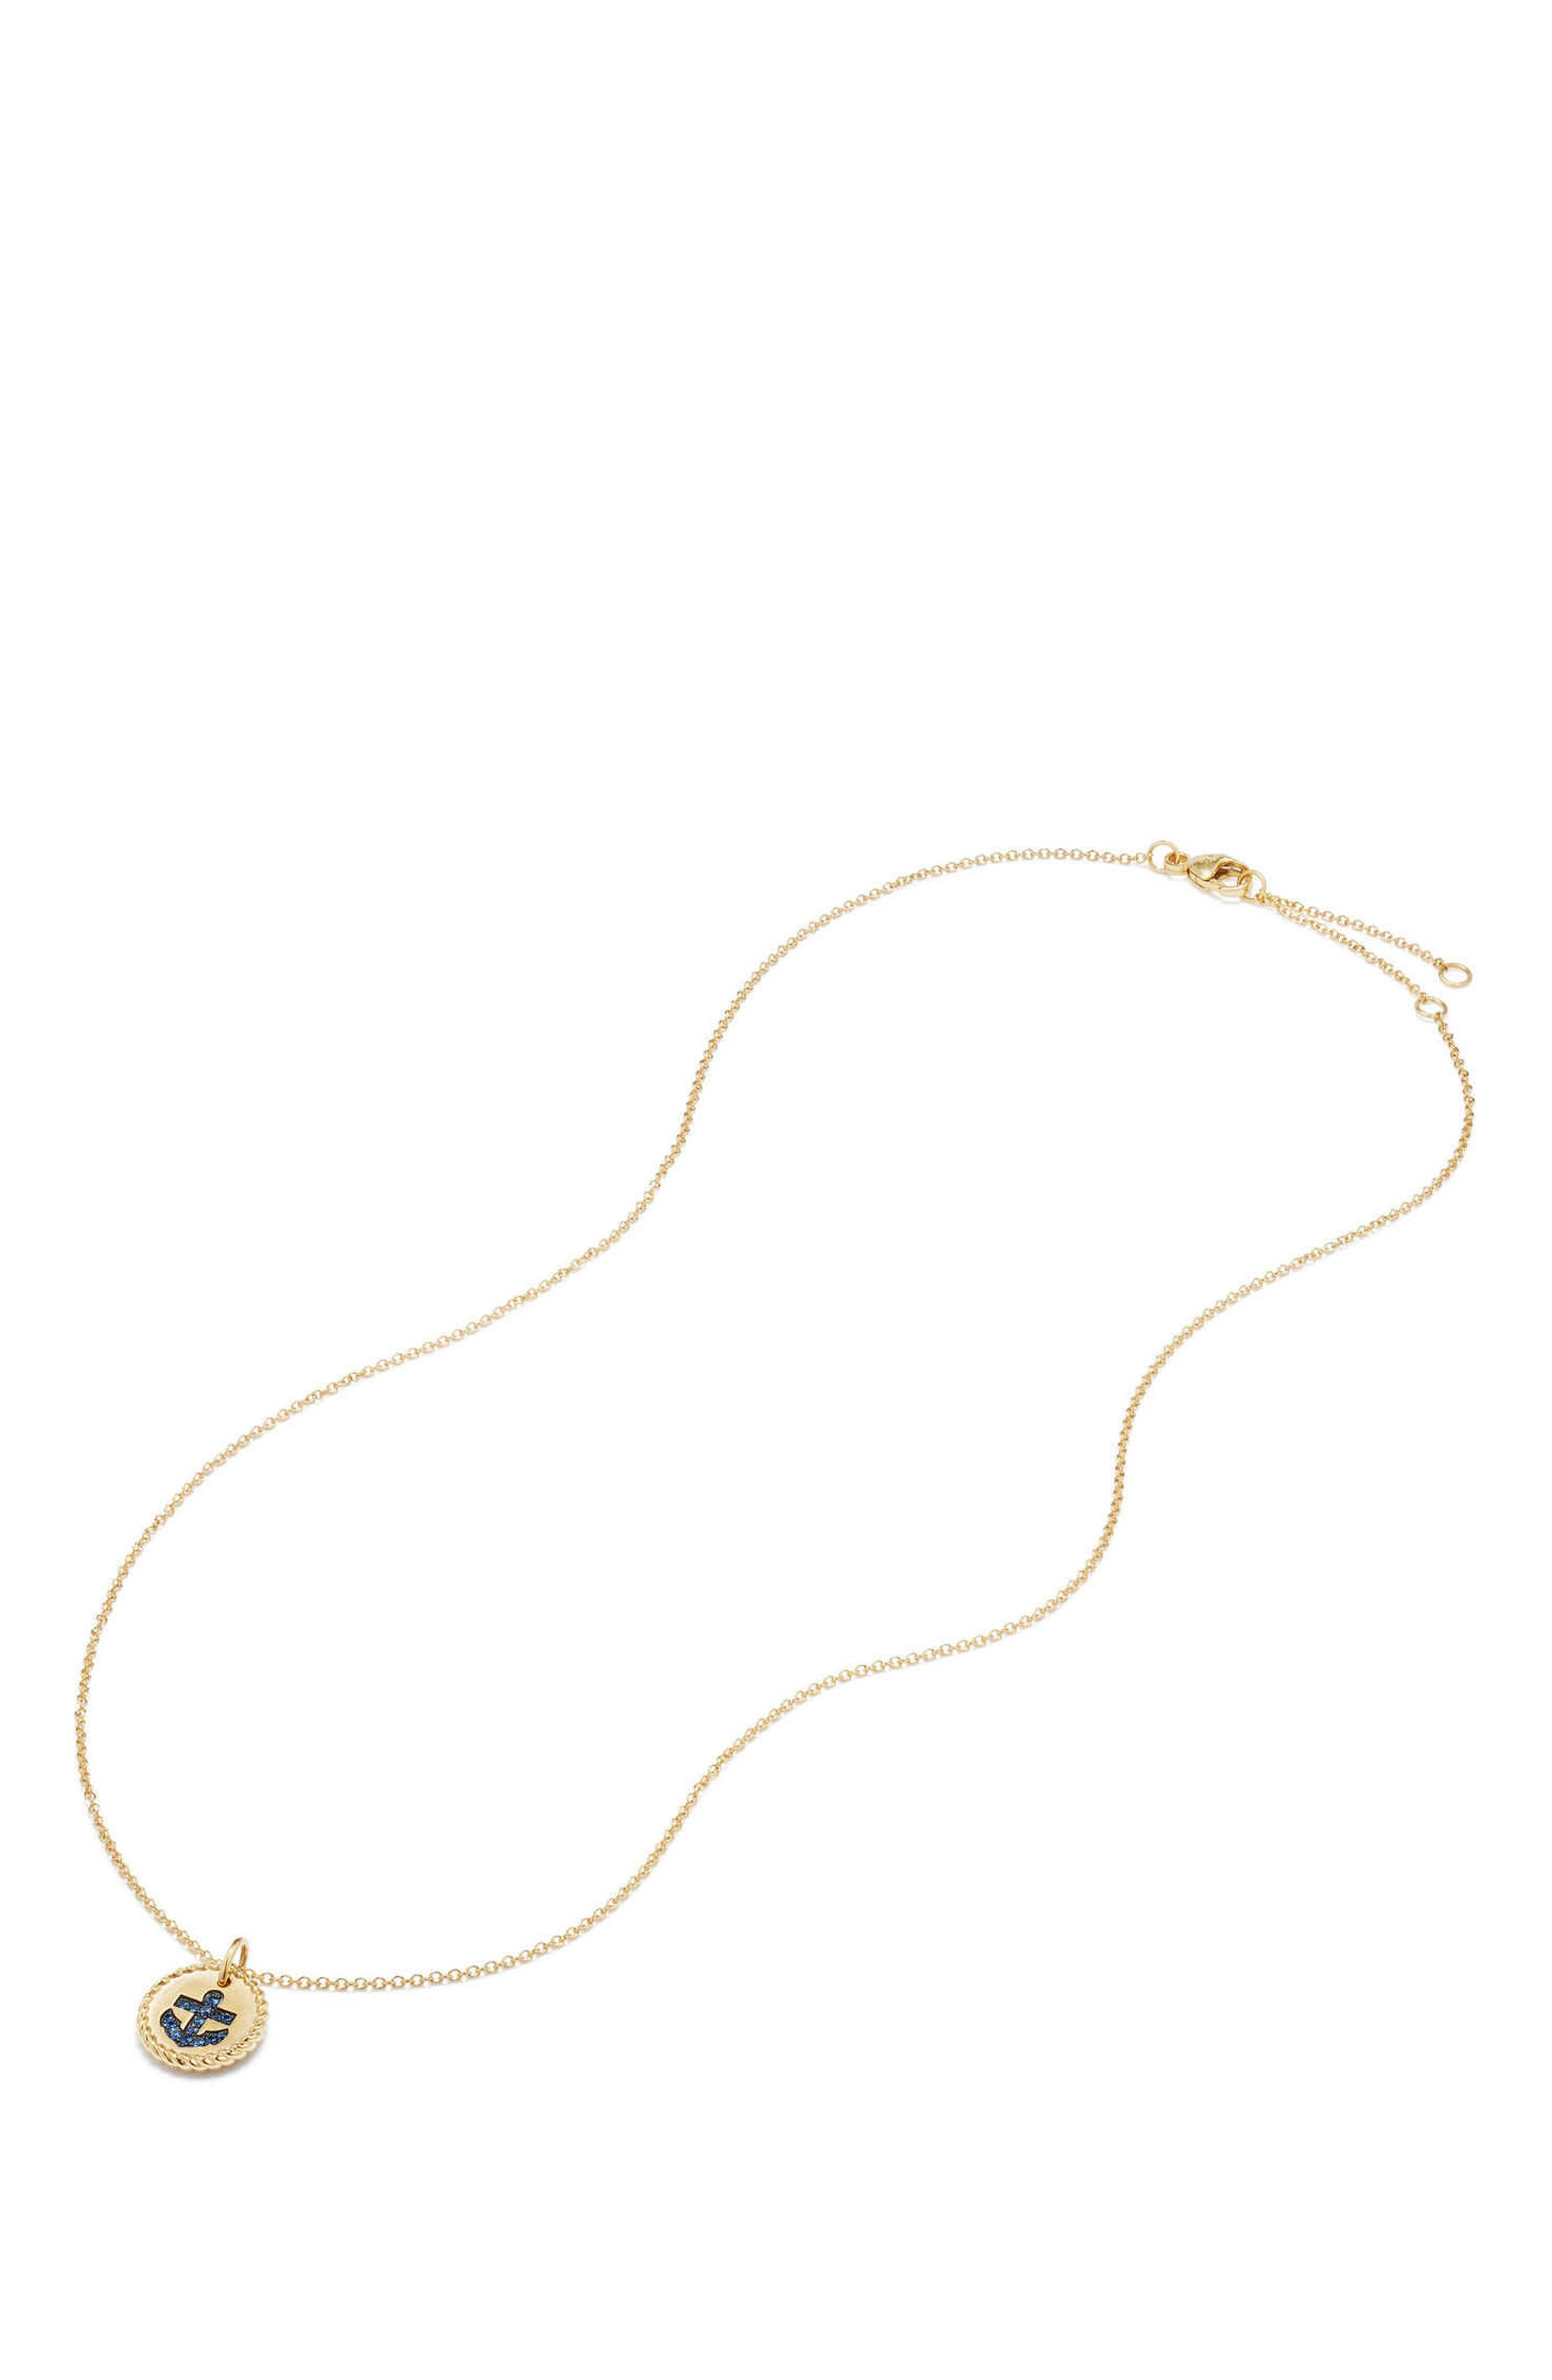 Cable Collectibles Anchor Necklace with Light Blue Sapphires in 18K Gold,                             Alternate thumbnail 2, color,                             GOLD/ LIGHT BLUE SAPPHIRE